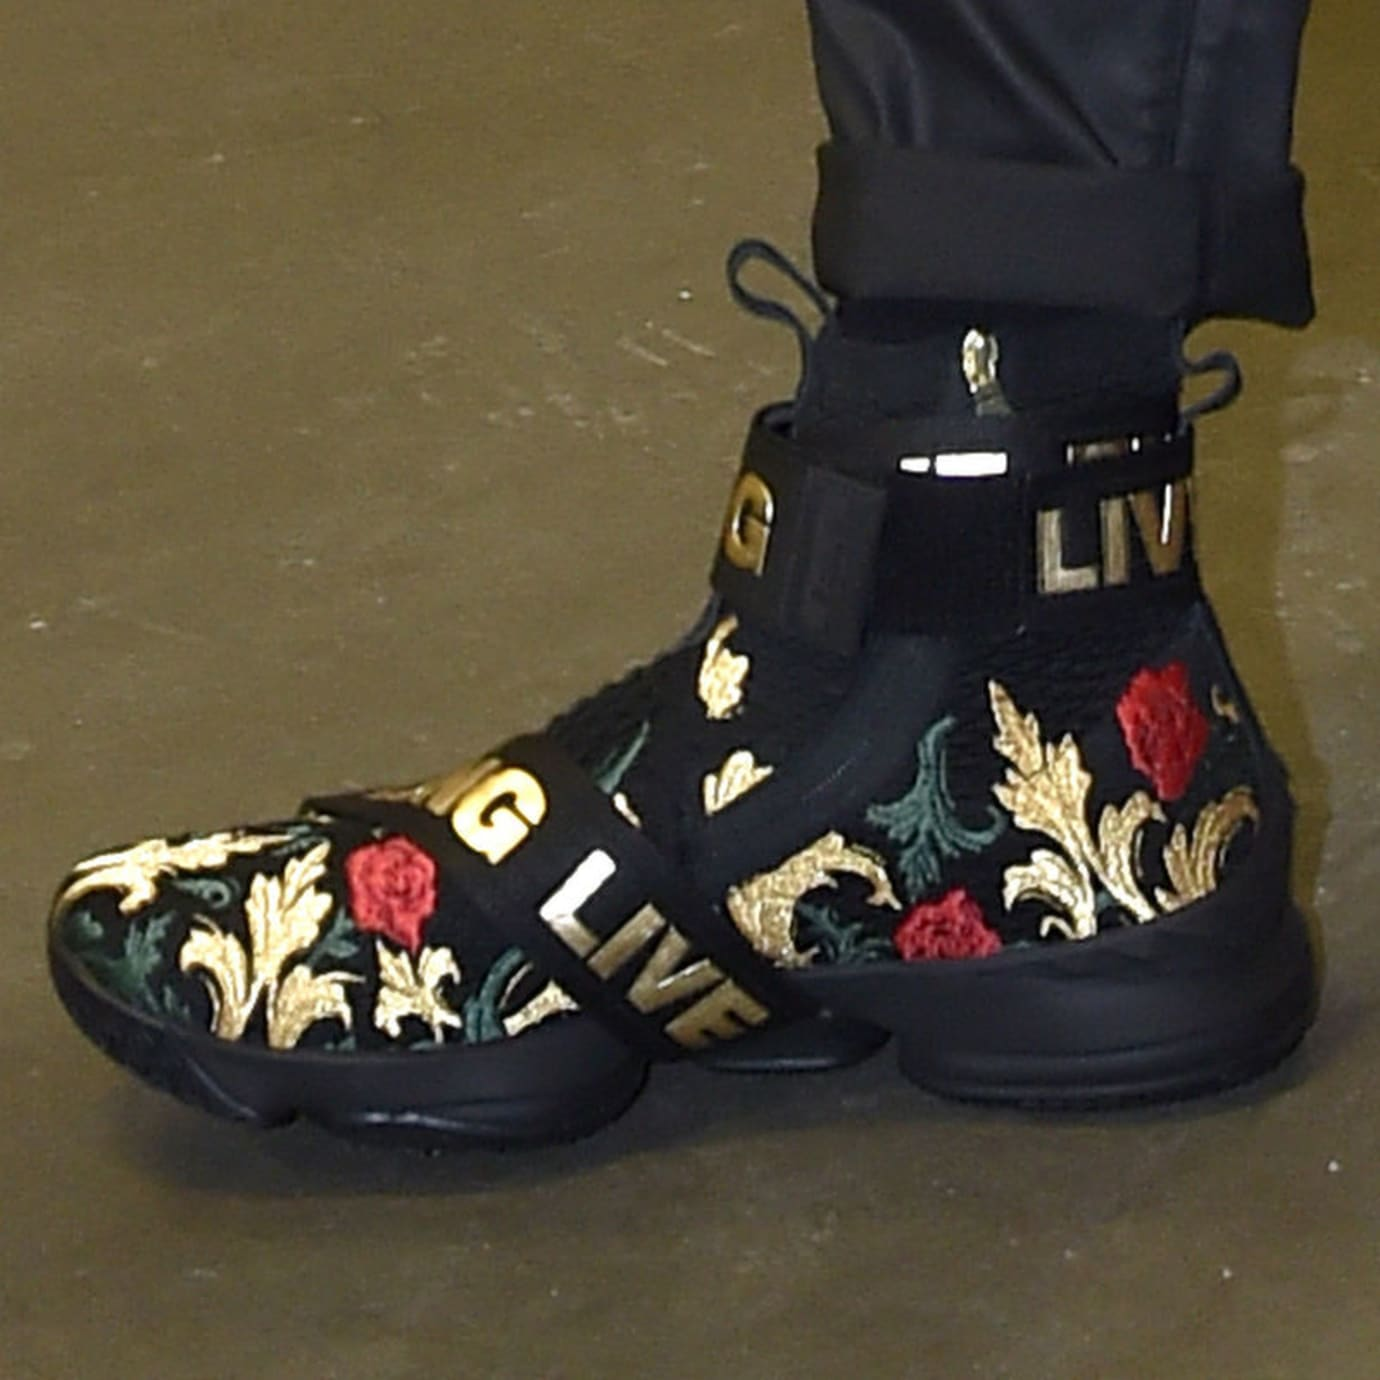 Kith x Nike LeBron 15 Strap Black Floral Close